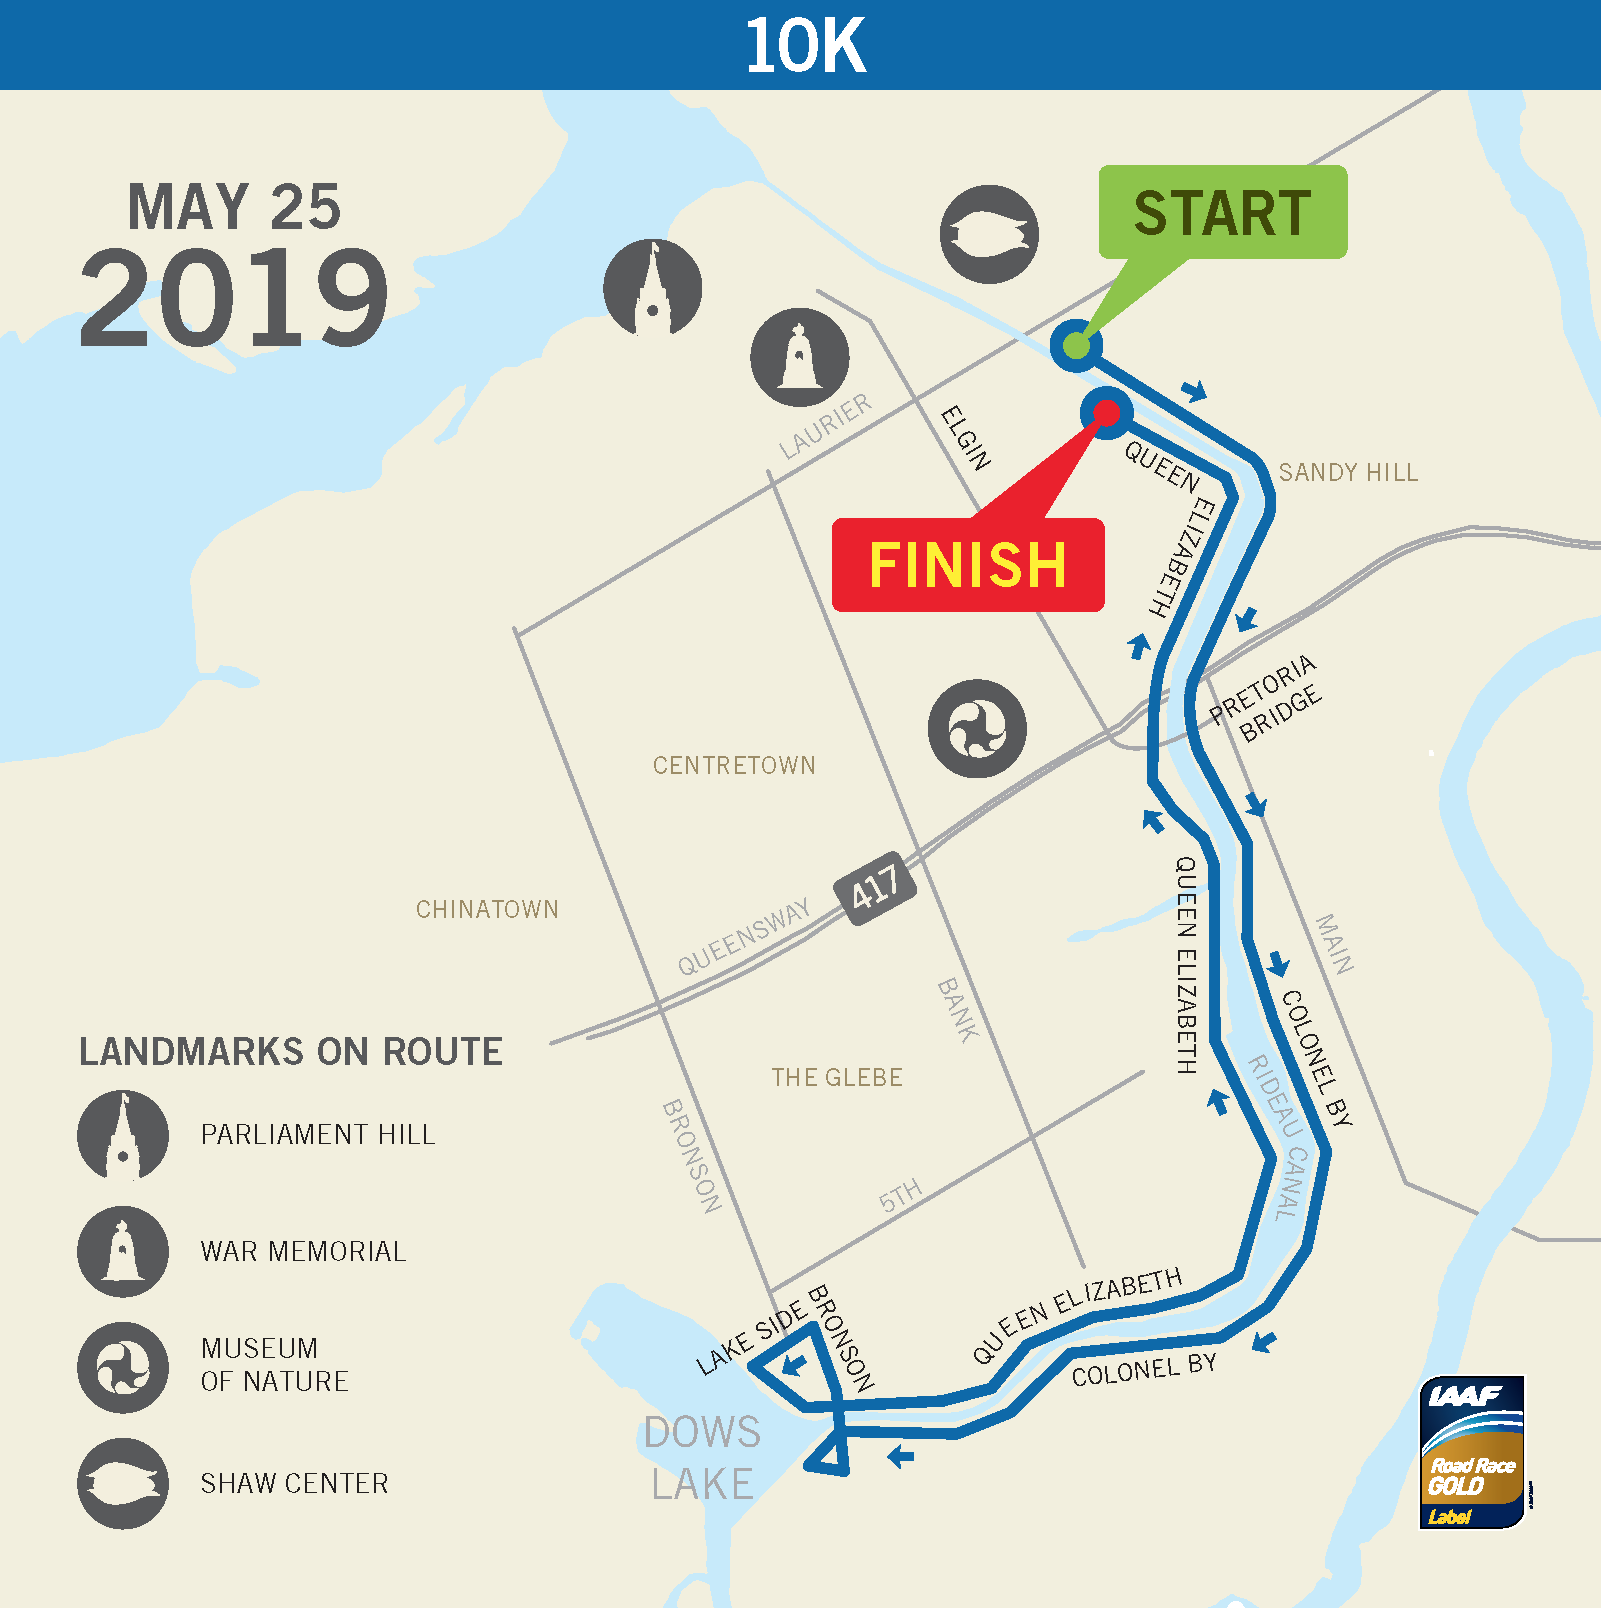 10K map for 2019